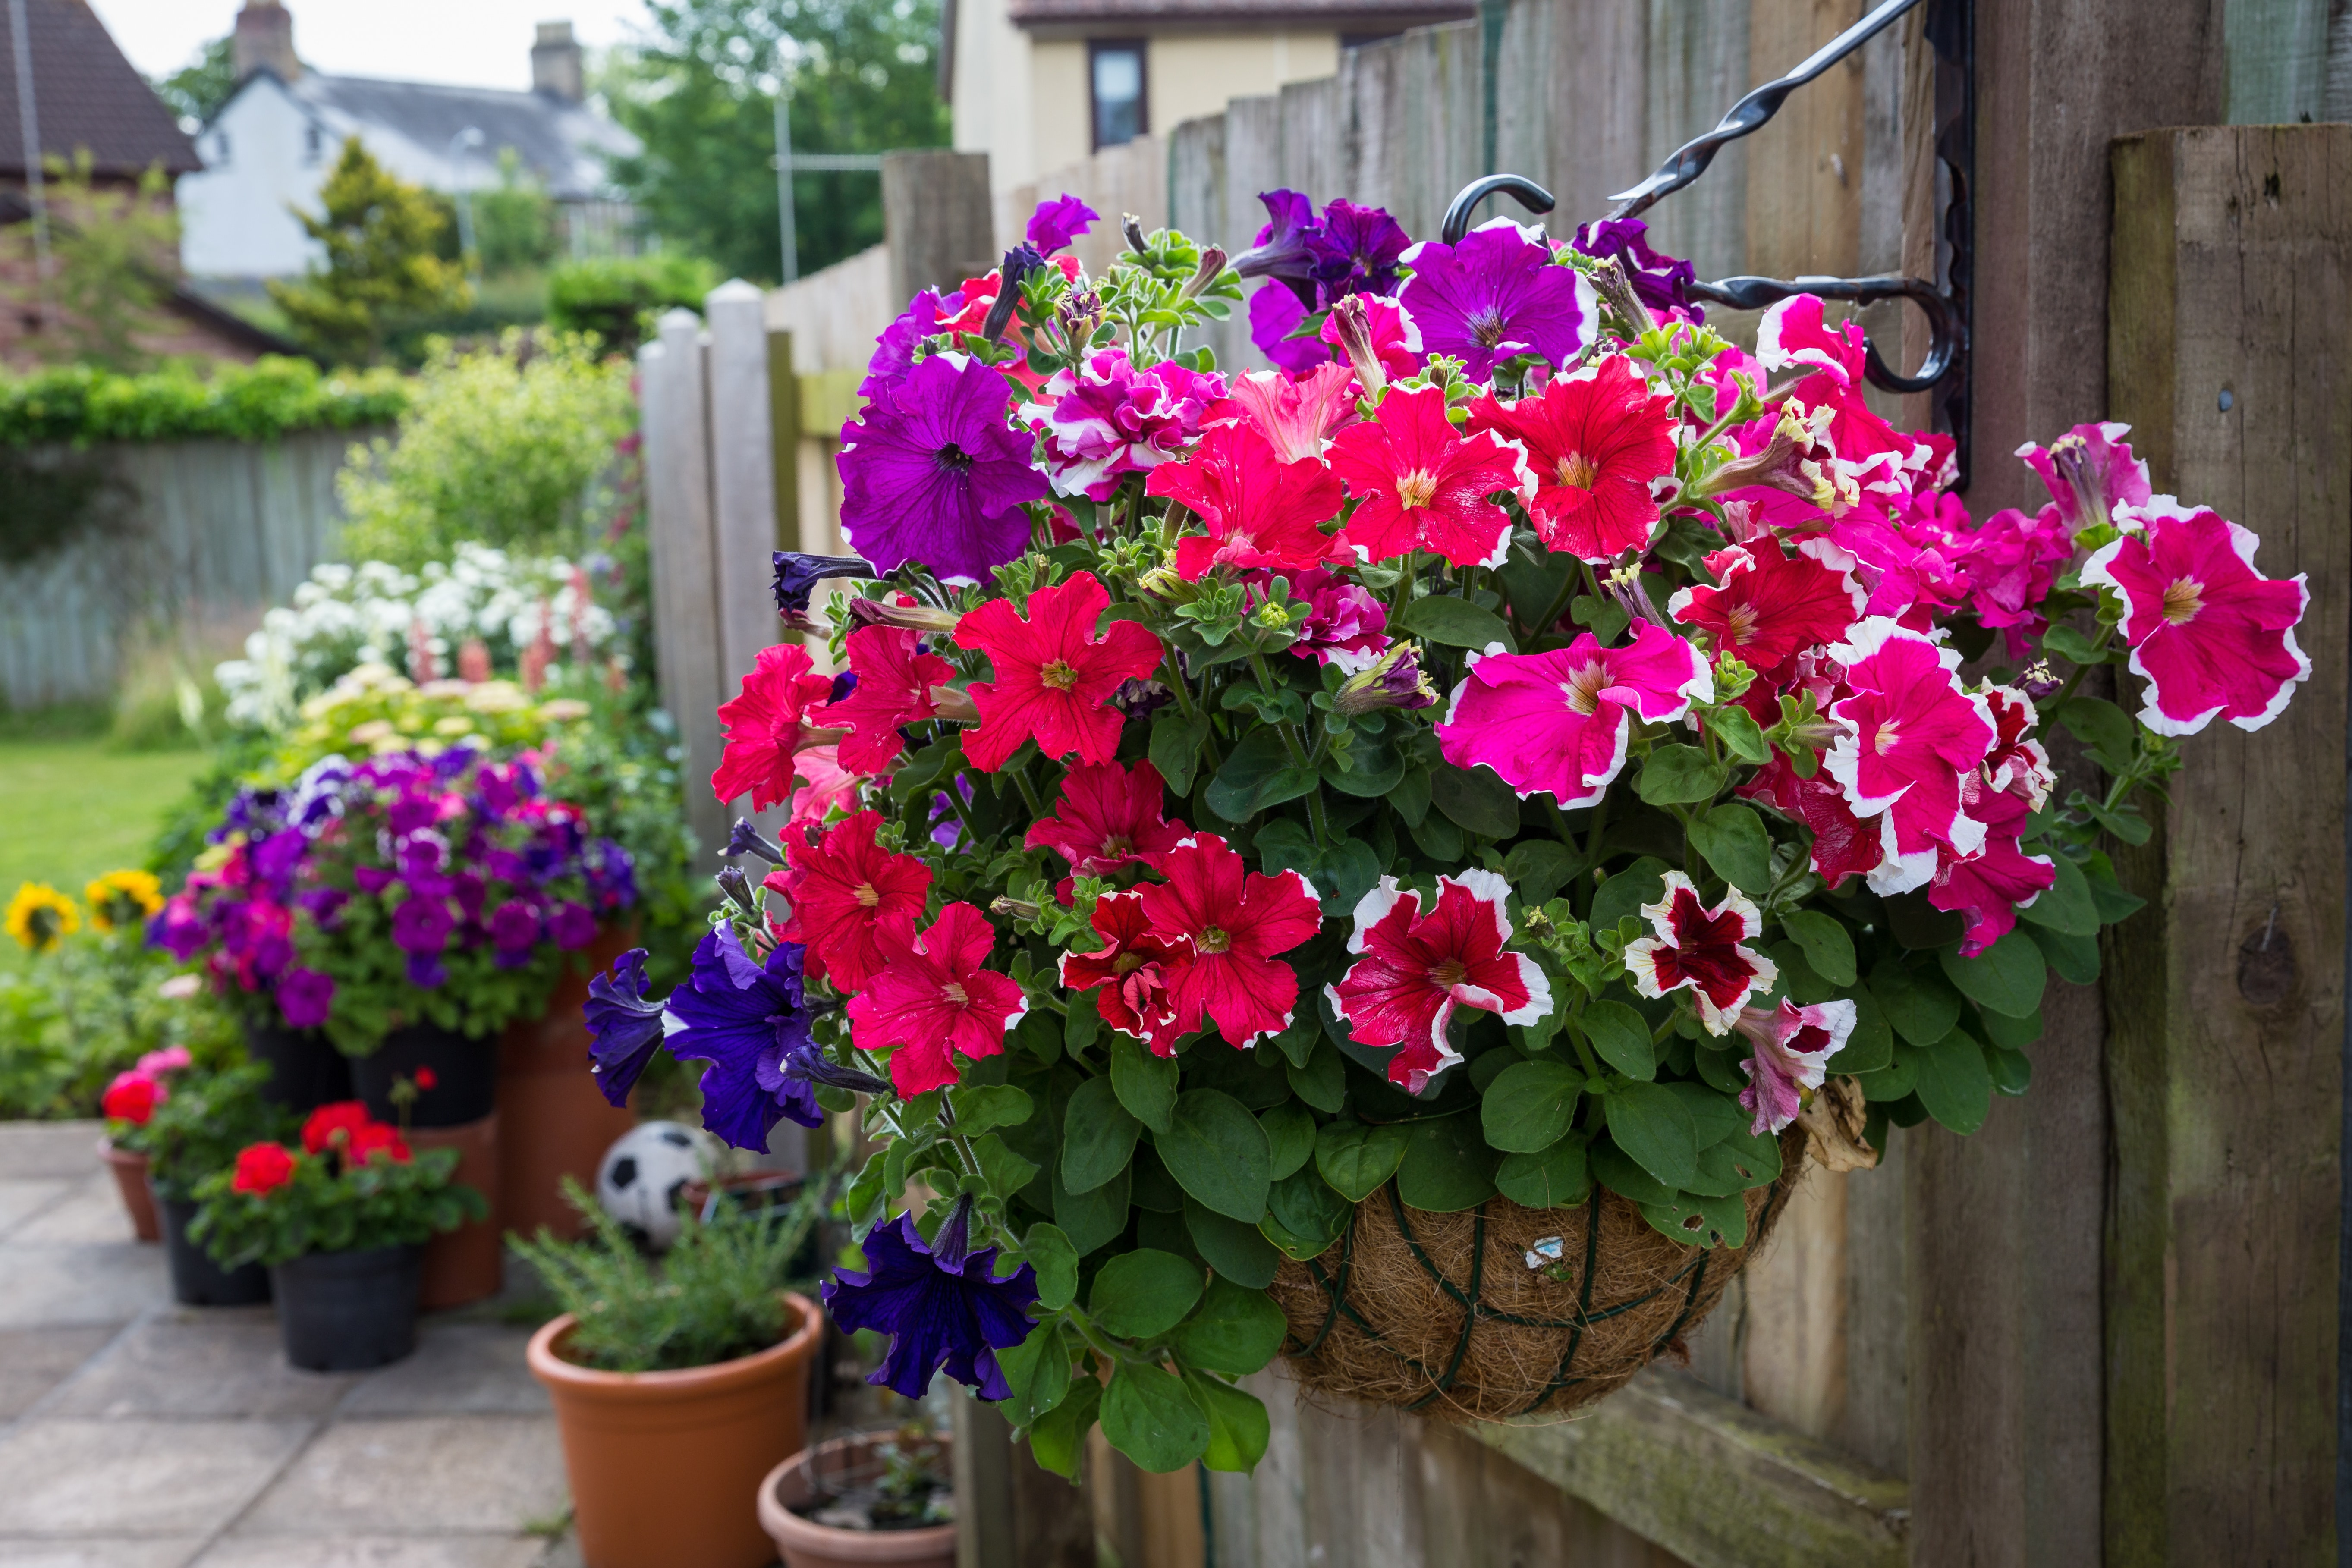 Hanging basket filled with petunia flowers in a garden in south Wales, UK